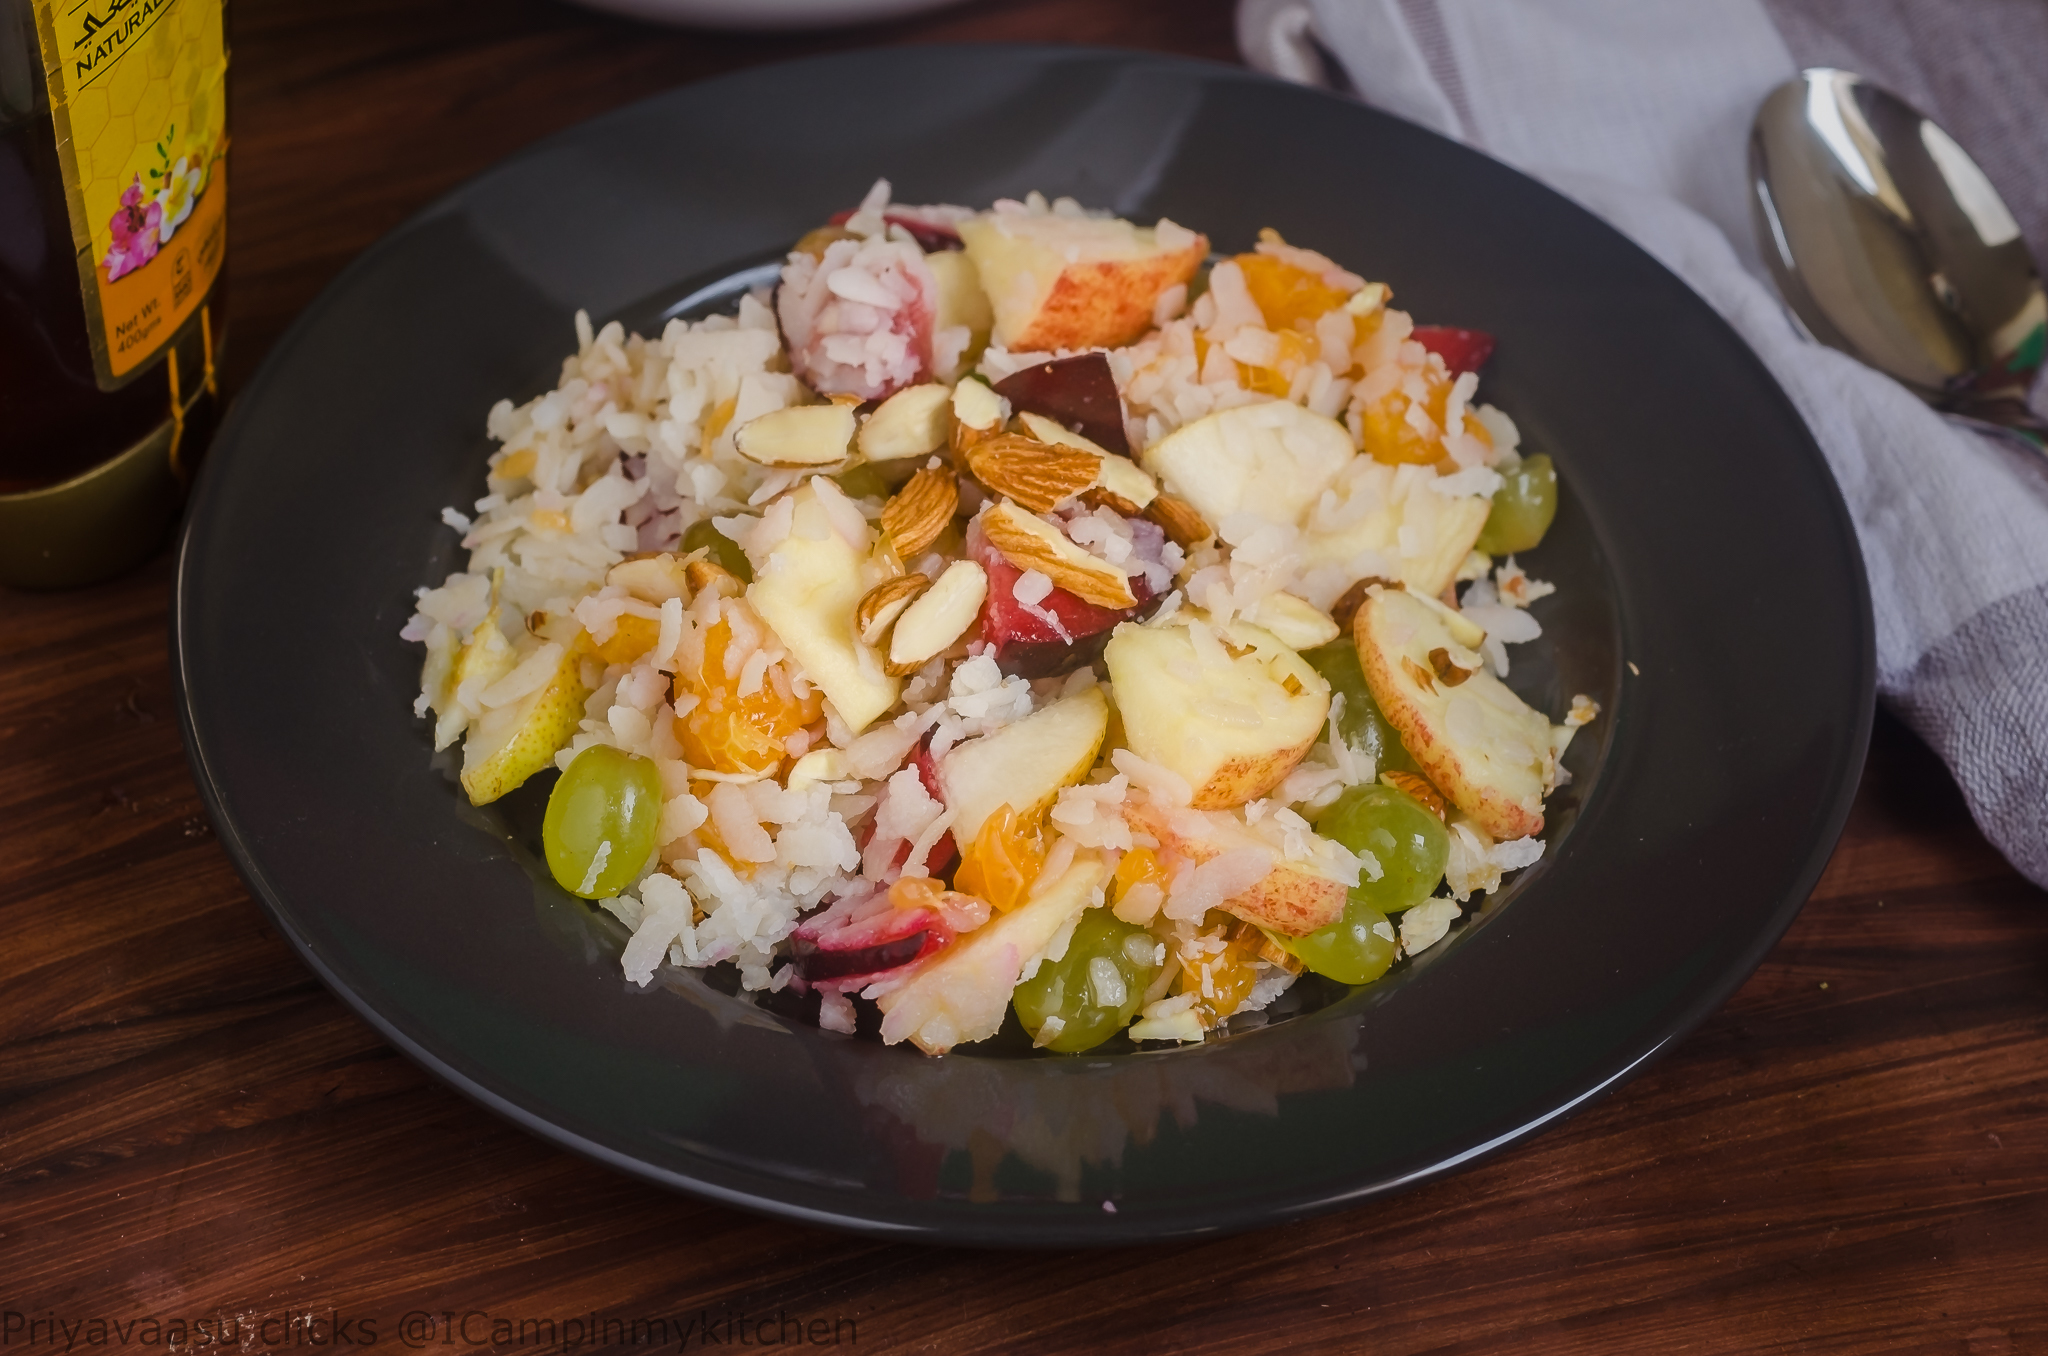 Fruit Salad with Poha and almonds/ Fruit salad with Rice flakes and almonds